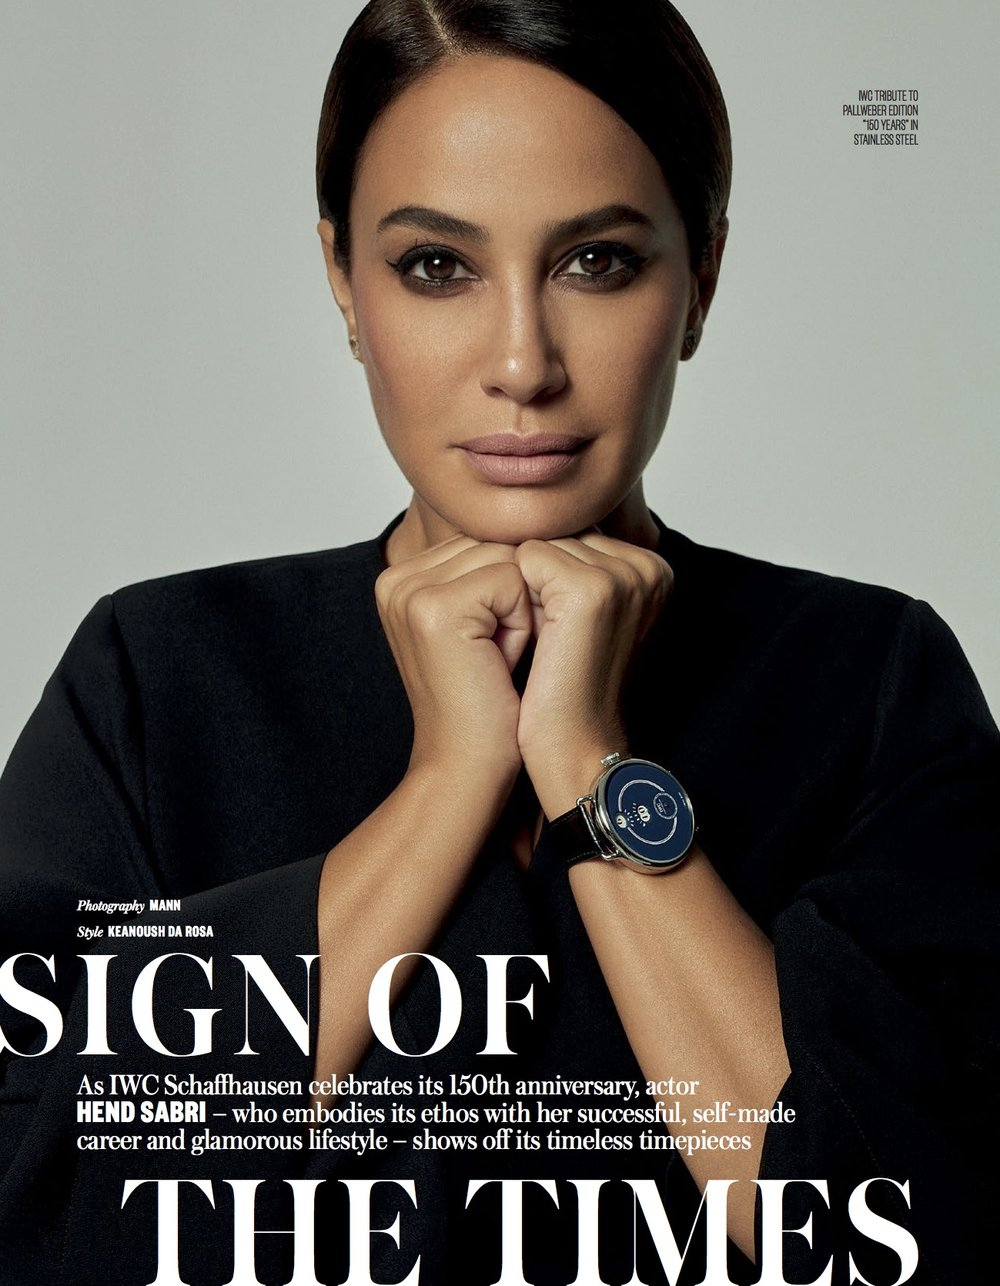 Vogue Arabia September FinalBinder_Magzter (dragged) 1.jpg